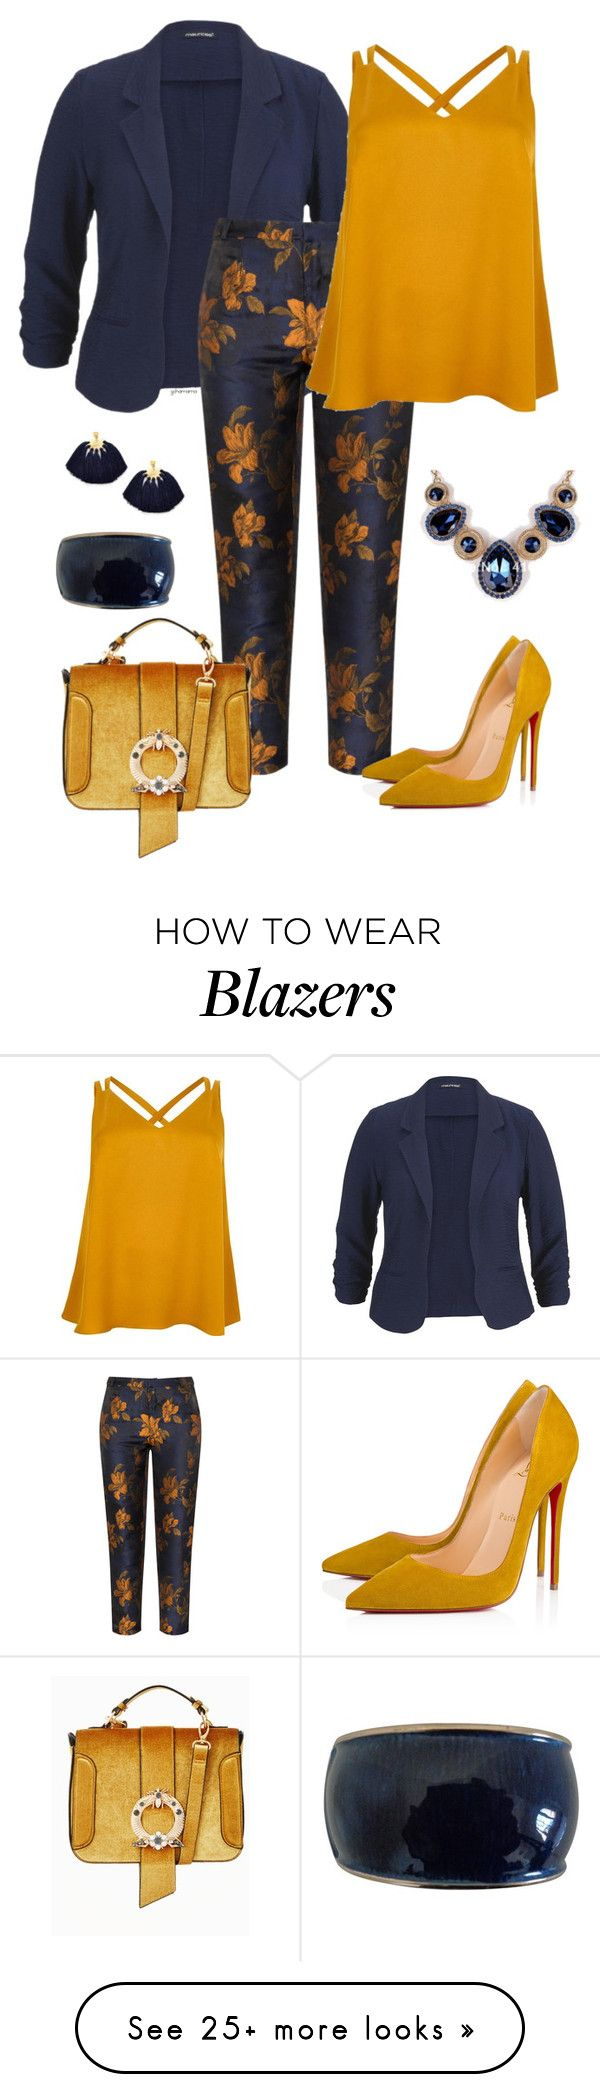 """""""Working for the $$- plus size"""" by gchamama on Polyvore featuring maurices, Manon Baptiste, River Island and Christian Louboutin"""